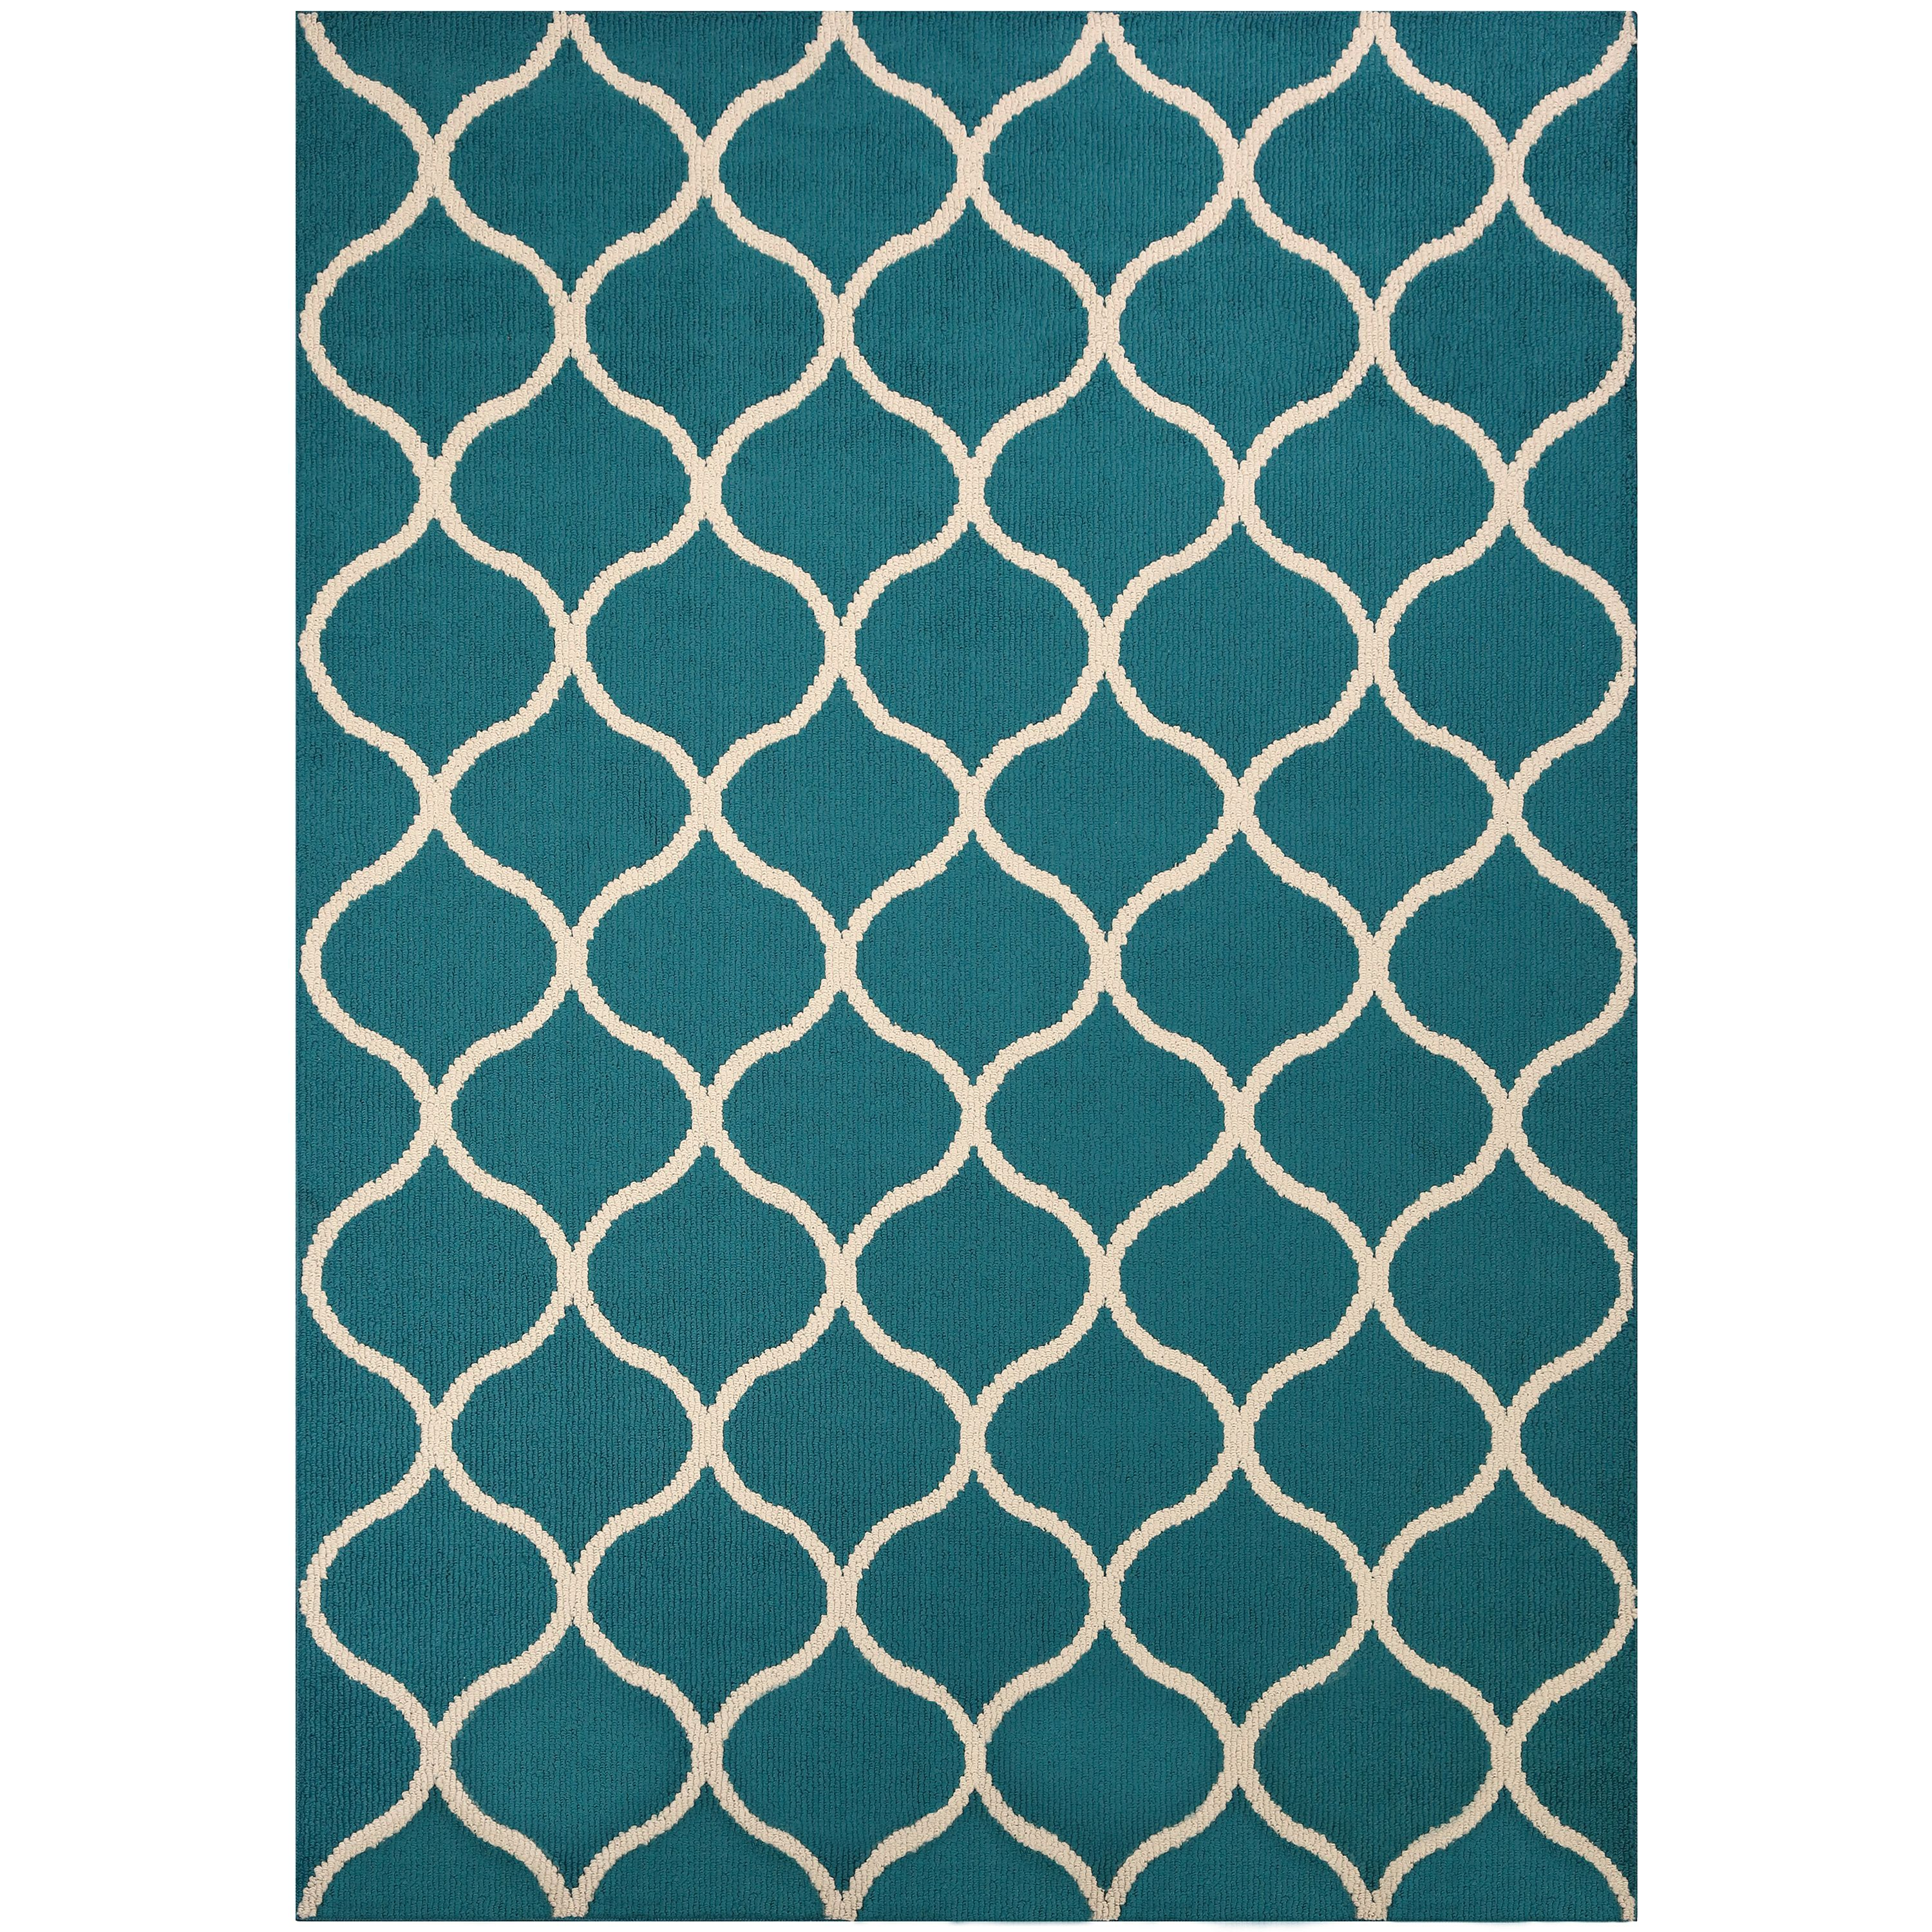 Product Image Mainstays Sheridan Fret Area Rug Or Runner, Multiple Sizes  And Colors